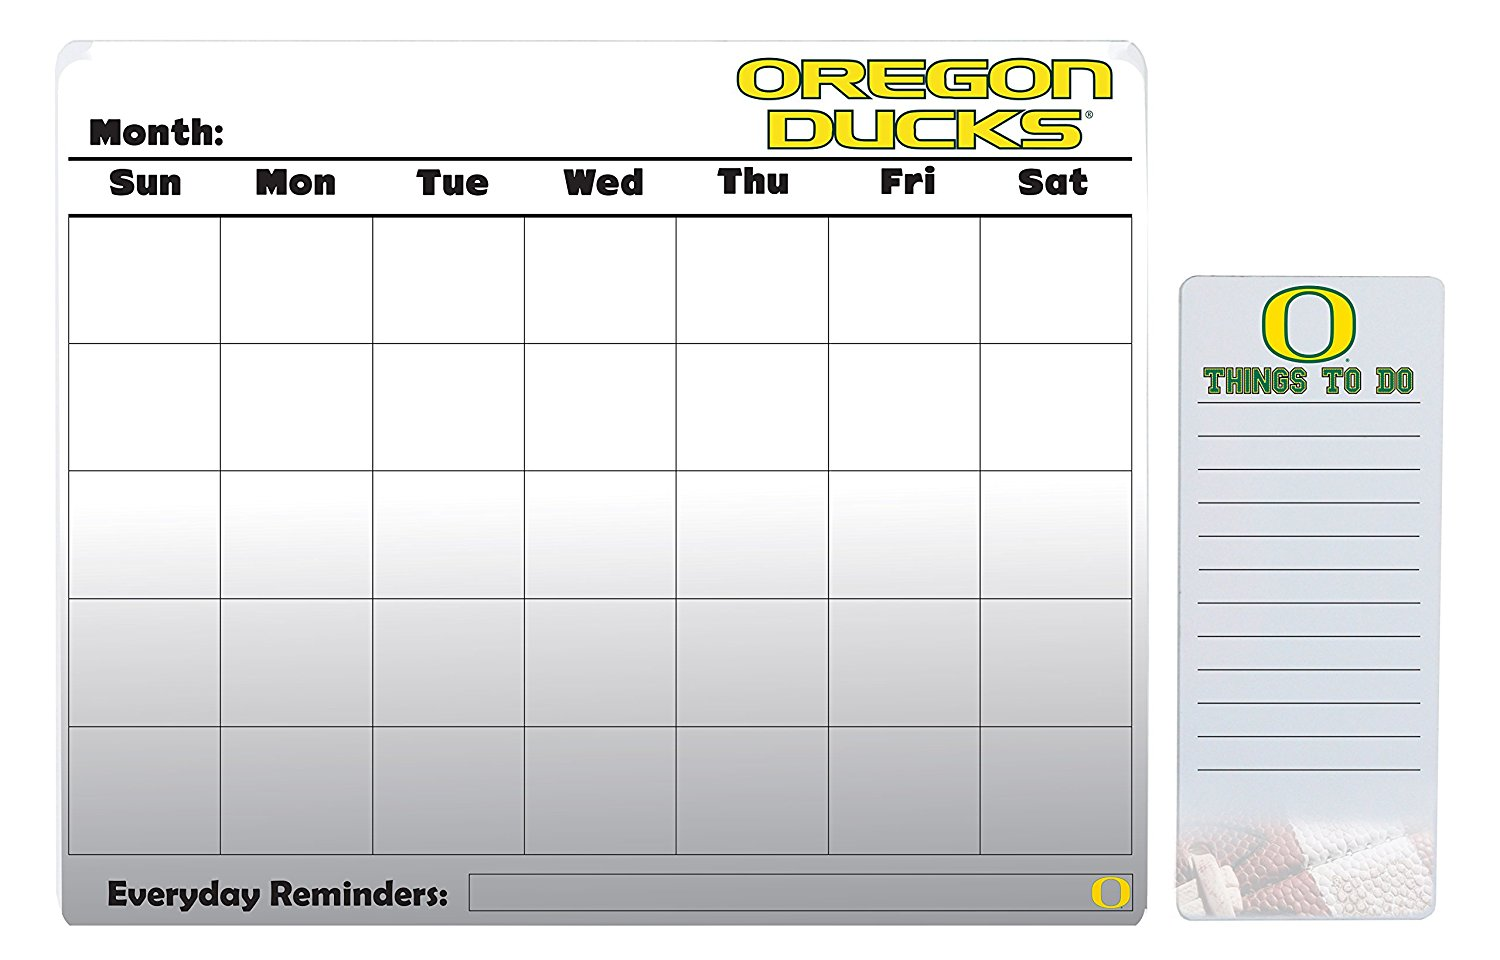 "Oregon Ducks 16"" x 20"" Dry Erase Calendar Peel and Stick and 4"" x 10"" Dry Erase Board Peel and Stick"